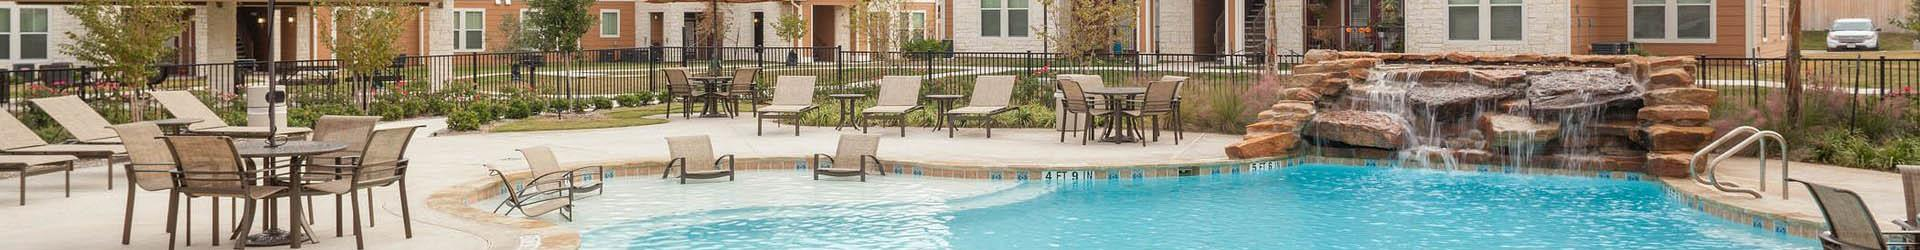 Pet-friendly apartments in San Marcos